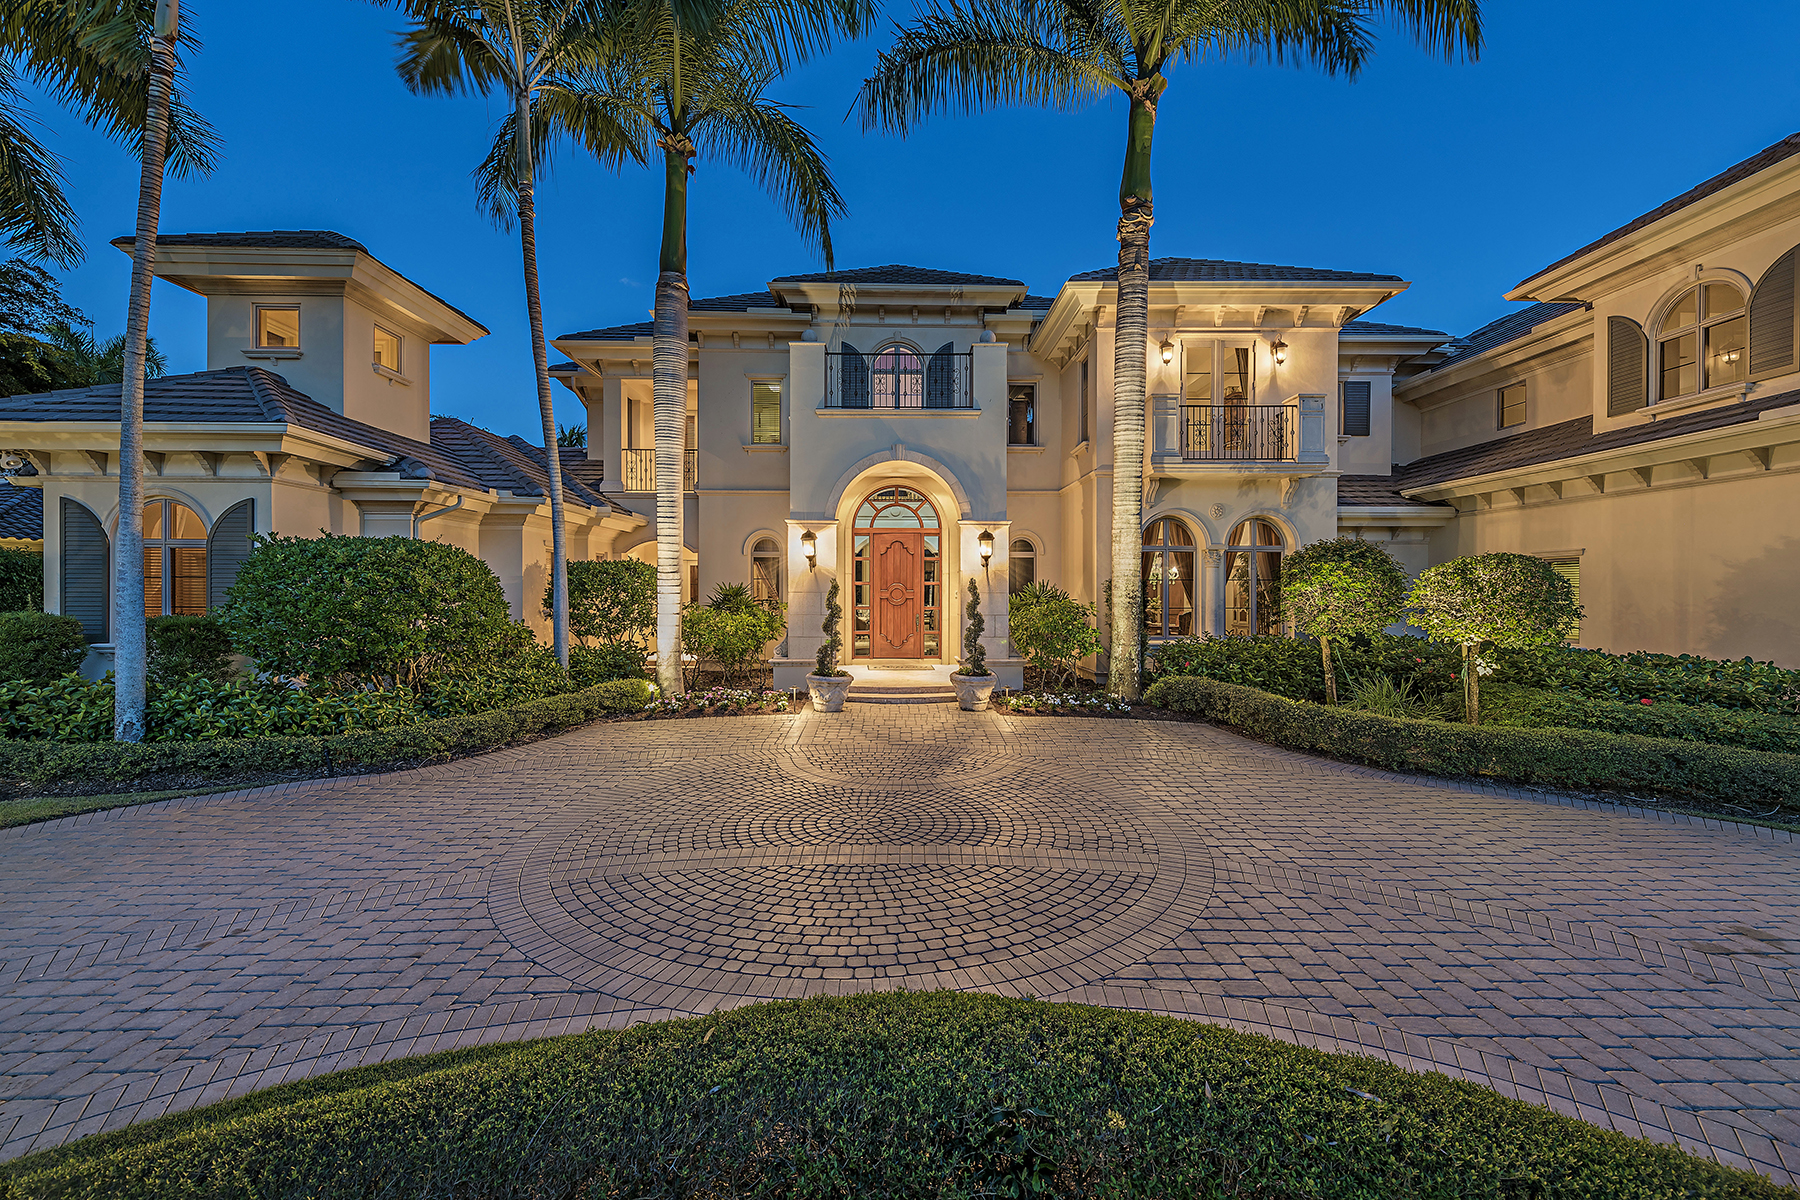 Casa Unifamiliar por un Venta en ESTUARY AT GREY OAKS 1420 Nighthawk Pt Naples, Florida, 34105 Estados Unidos